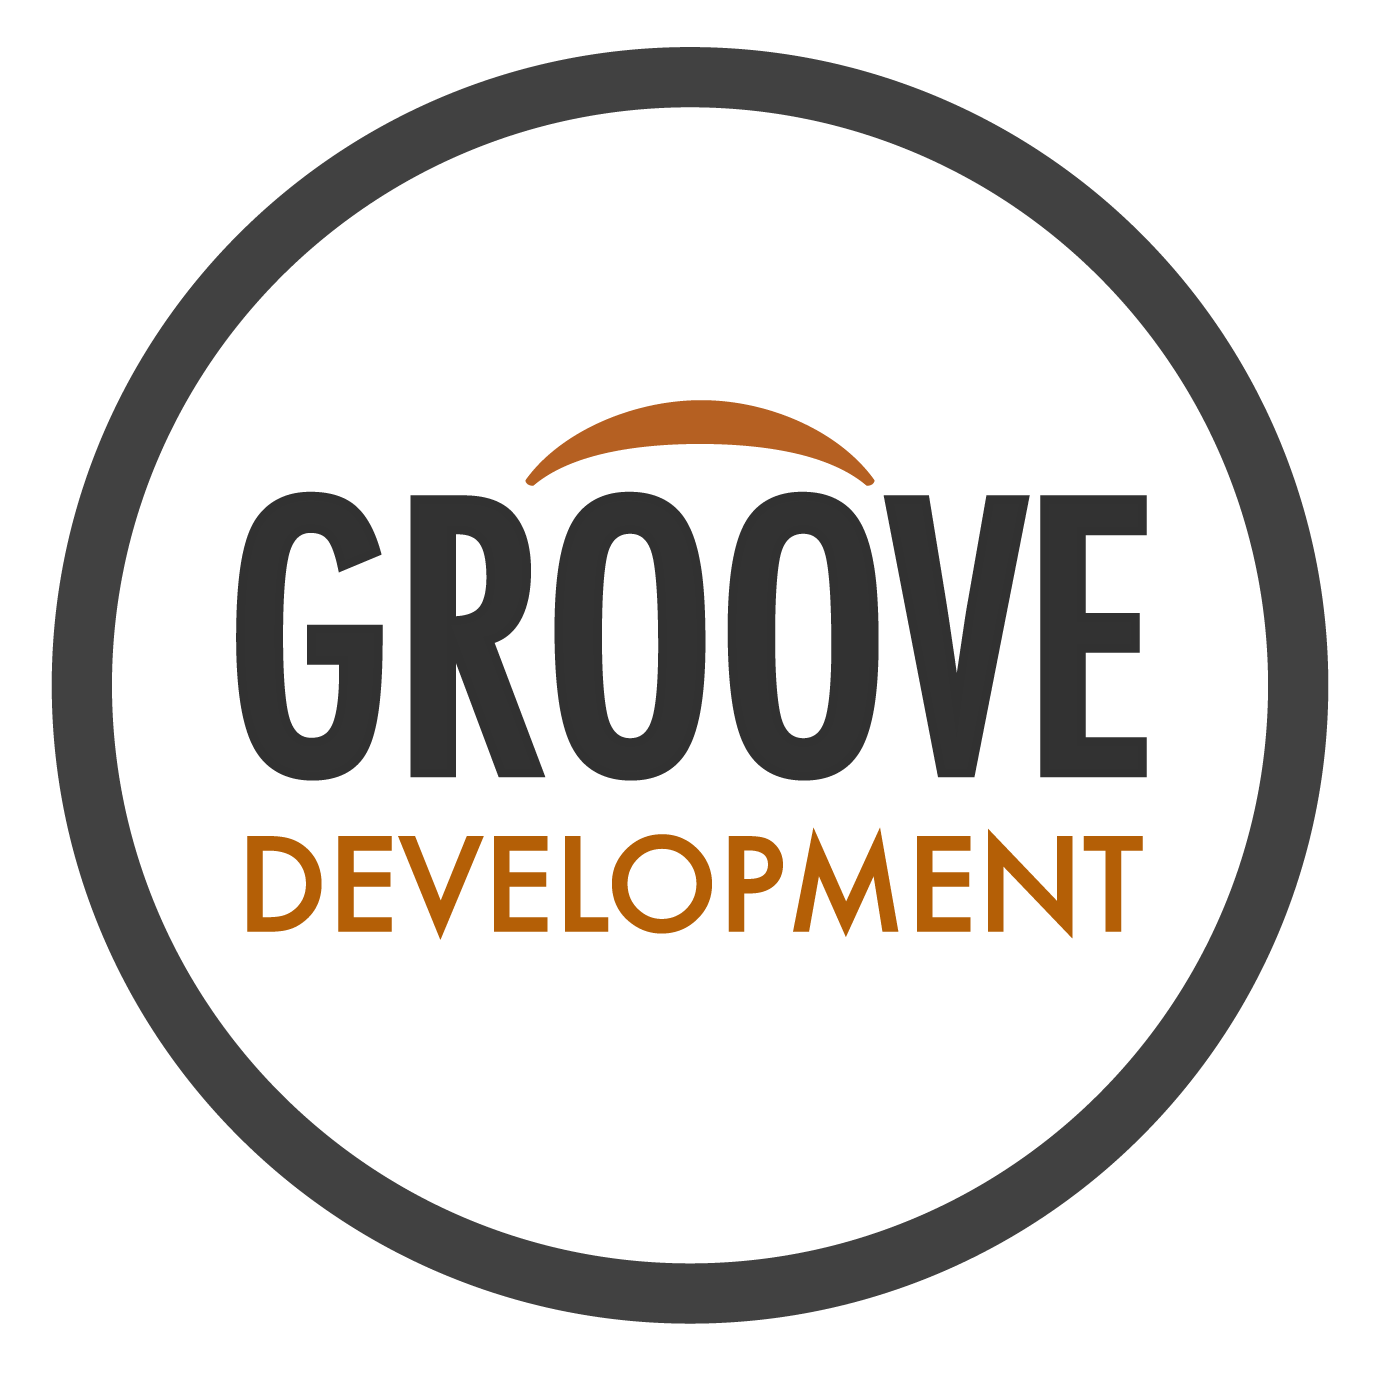 groove development logo